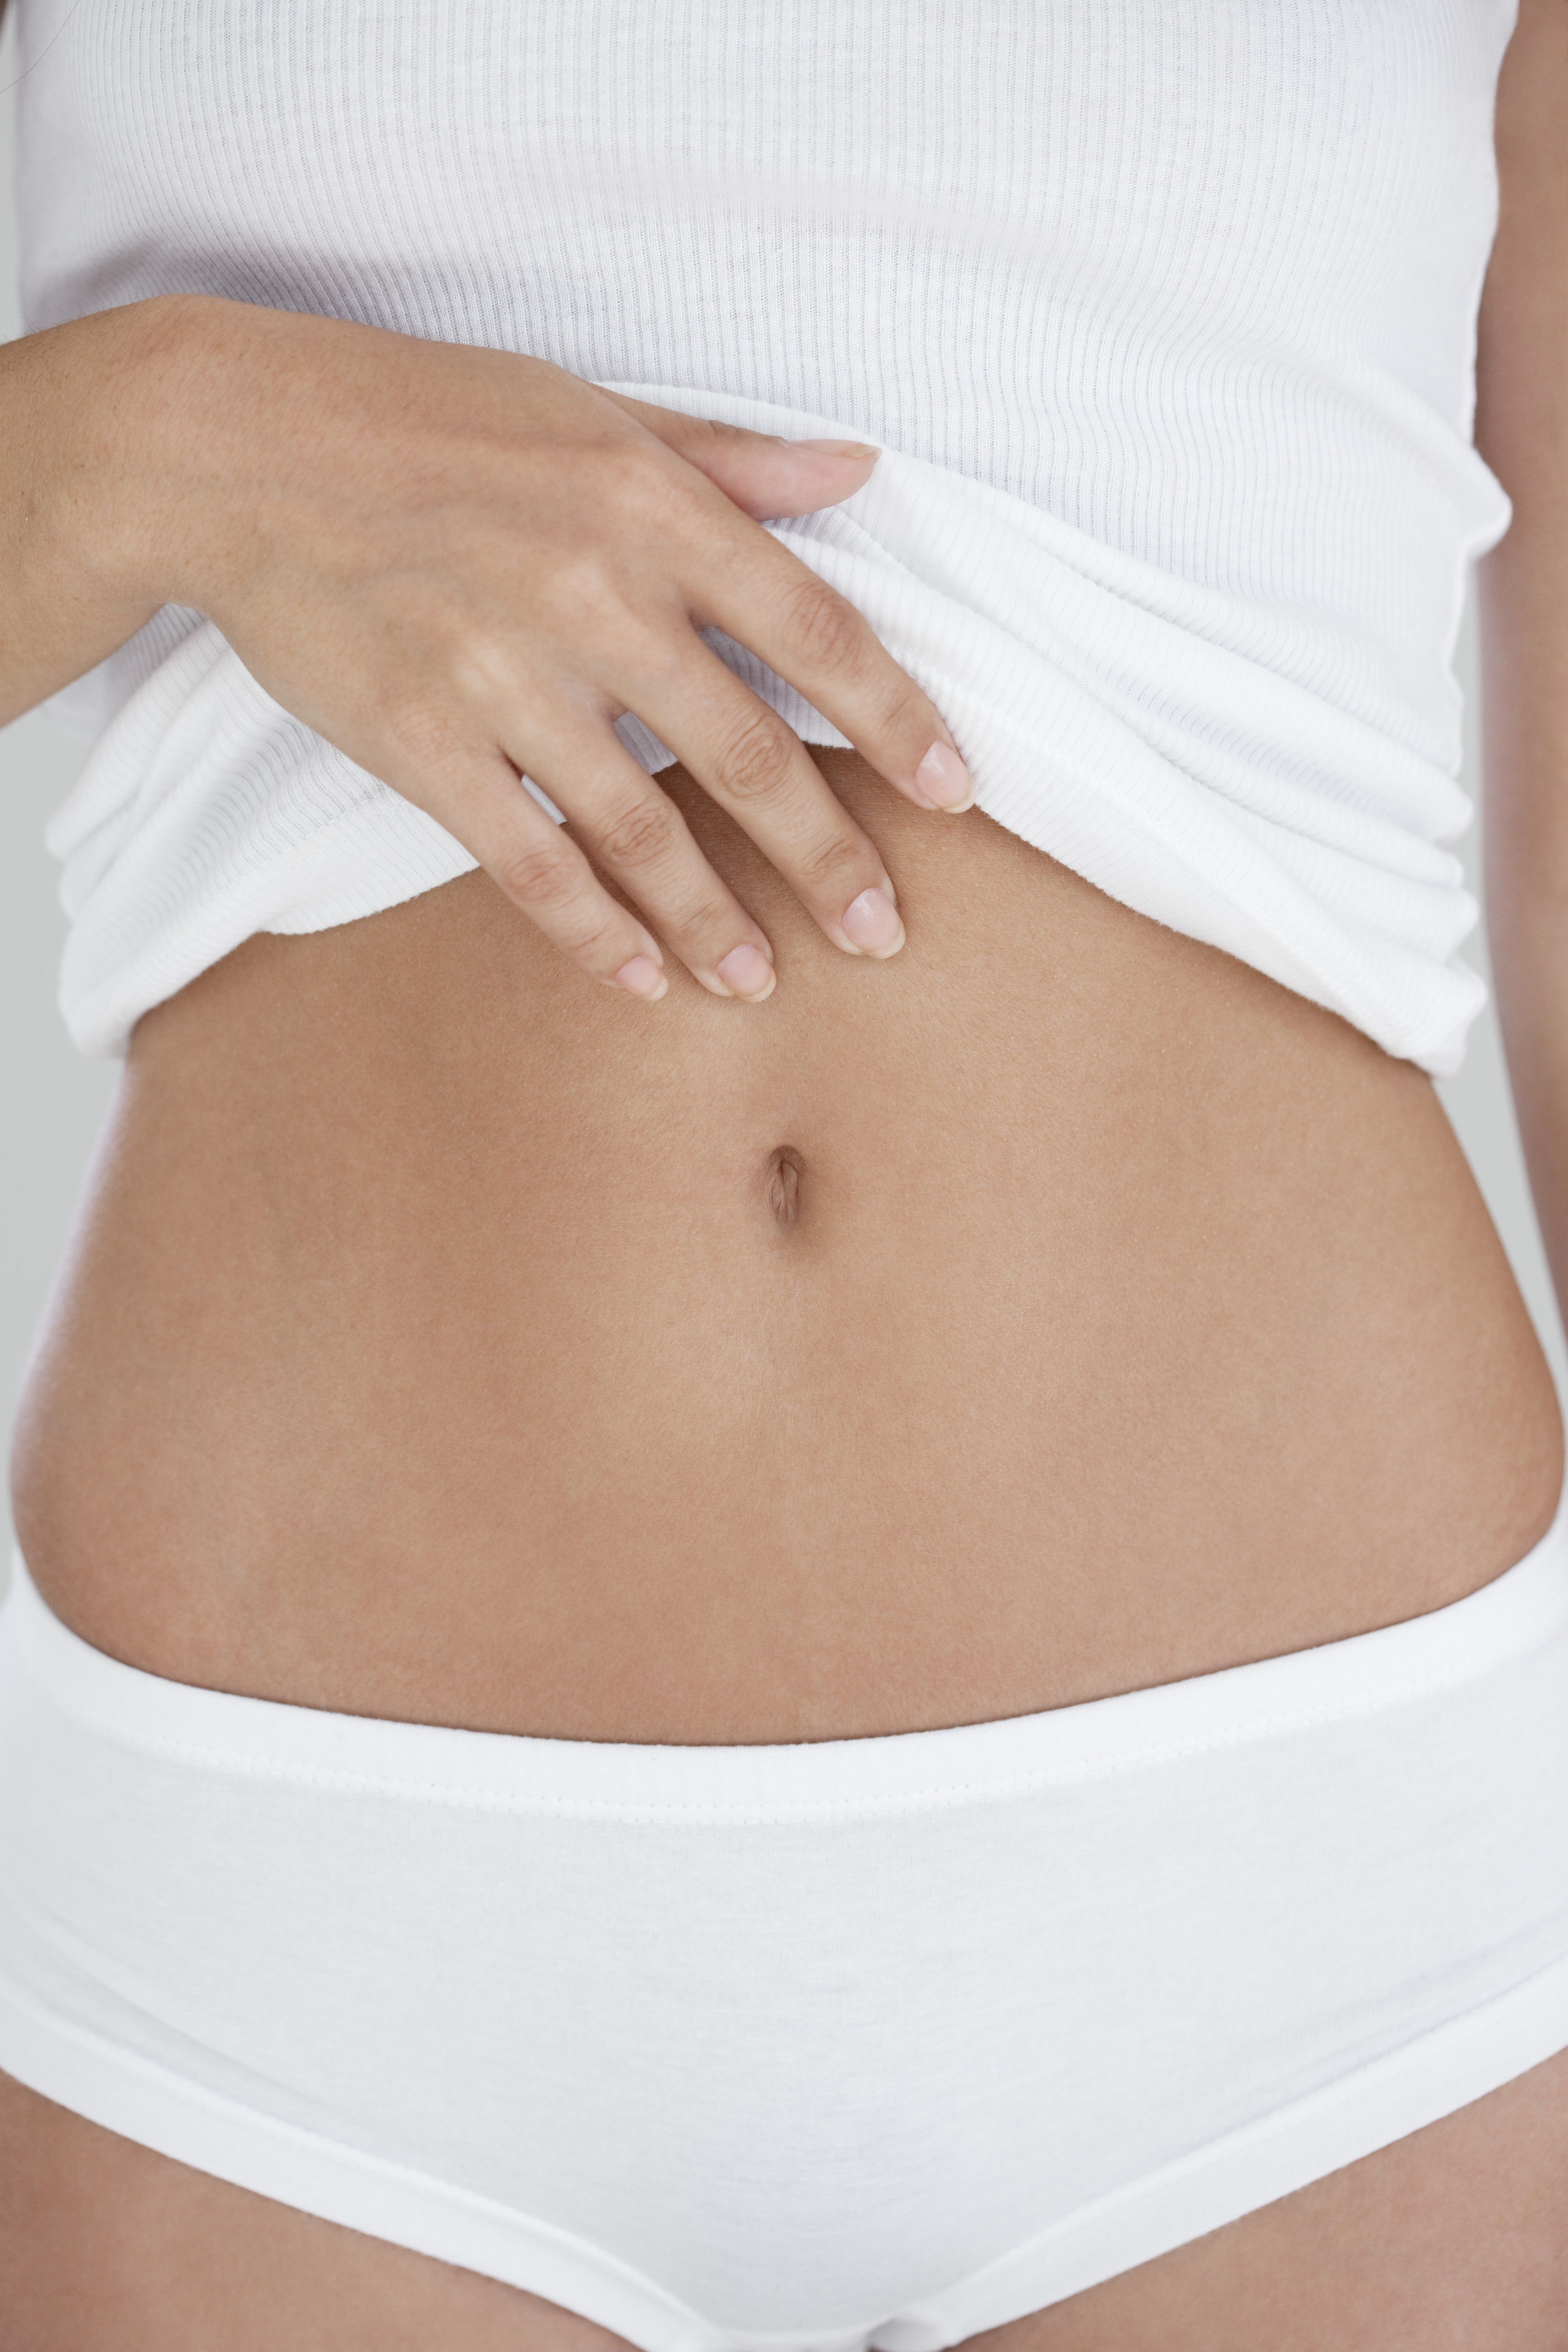 Permanent Hair Removal The Best Options For Smoother Skin